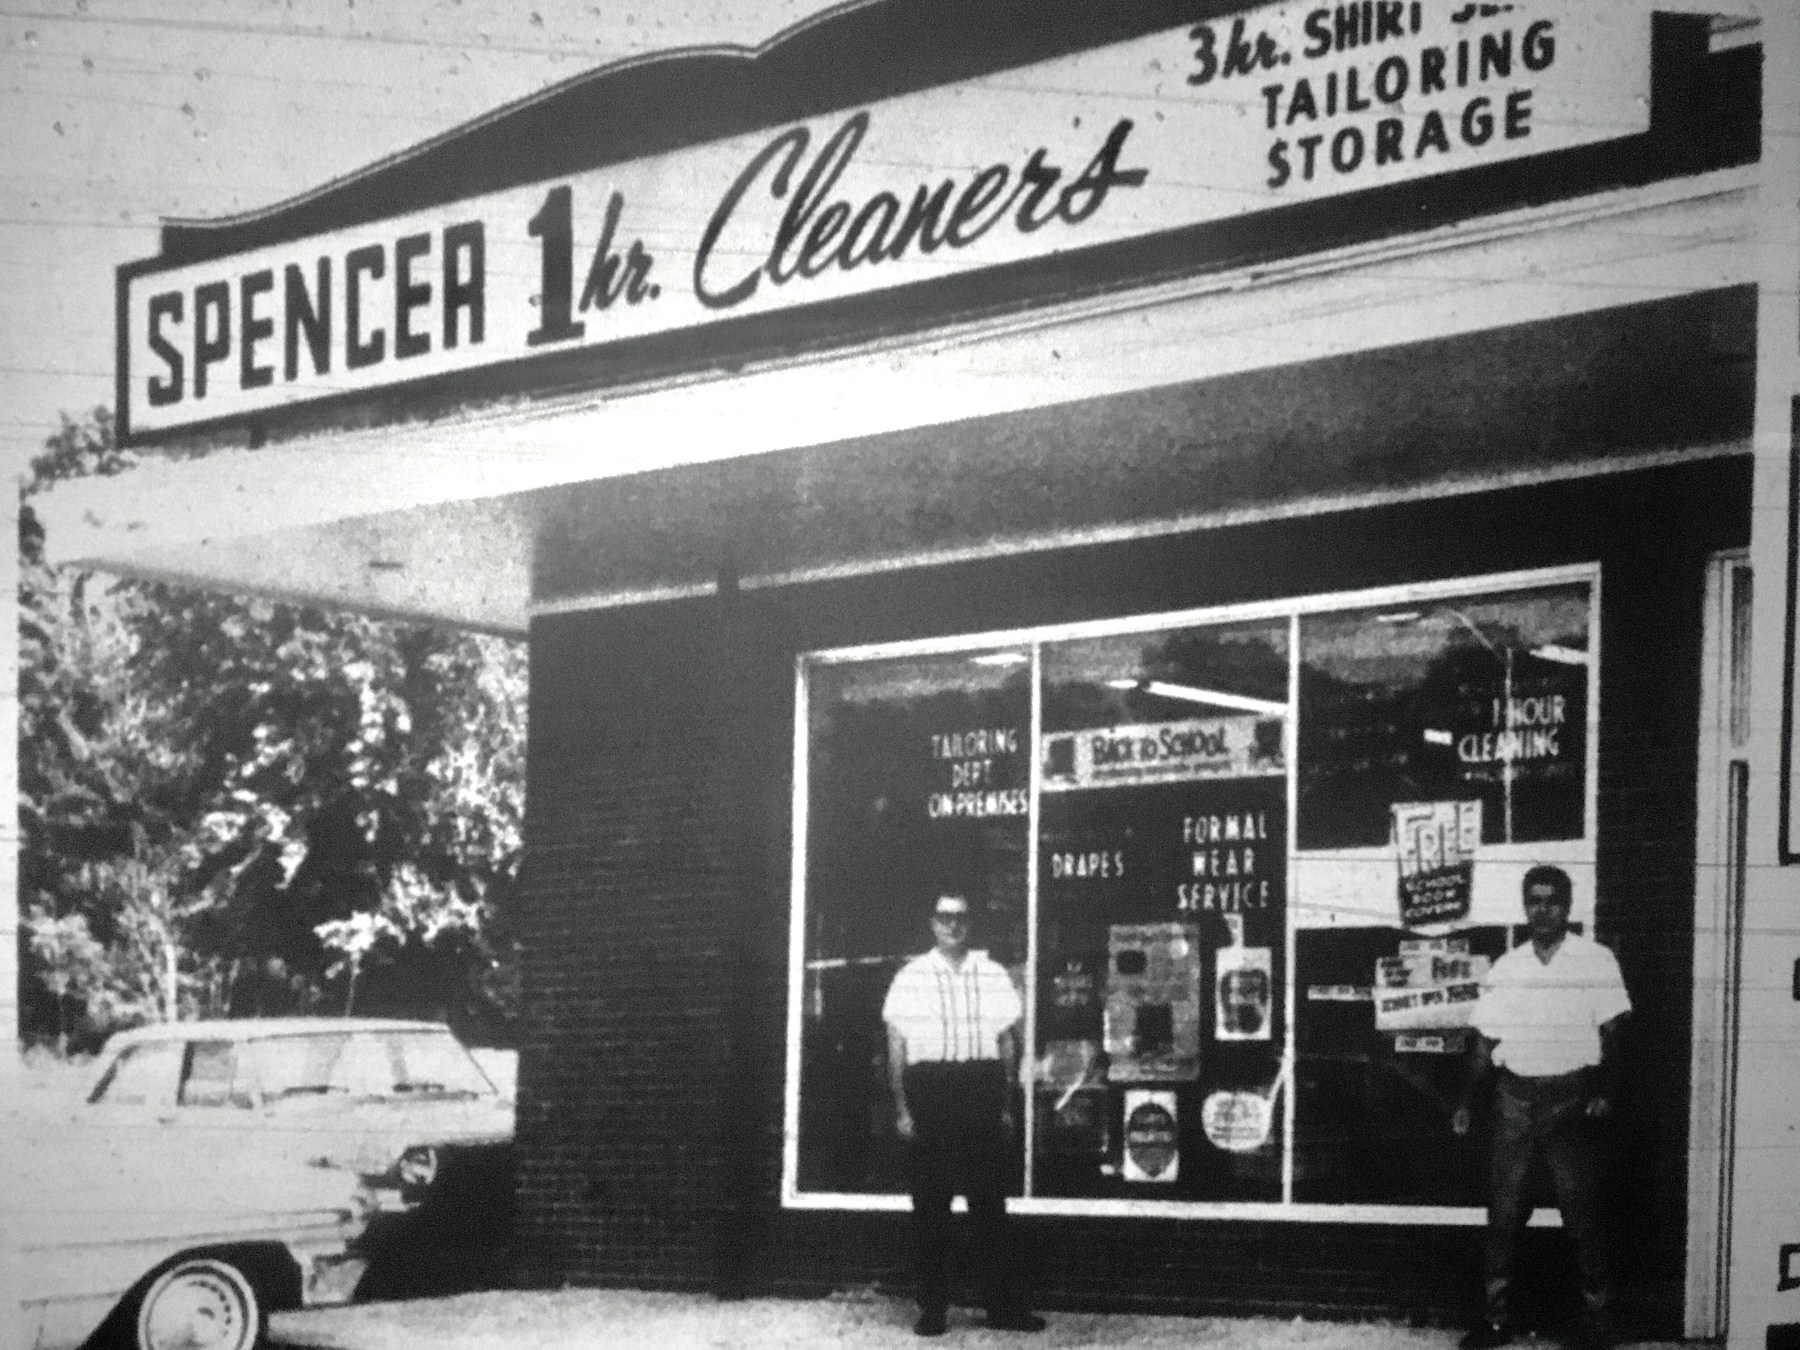 Spencer Cleaners